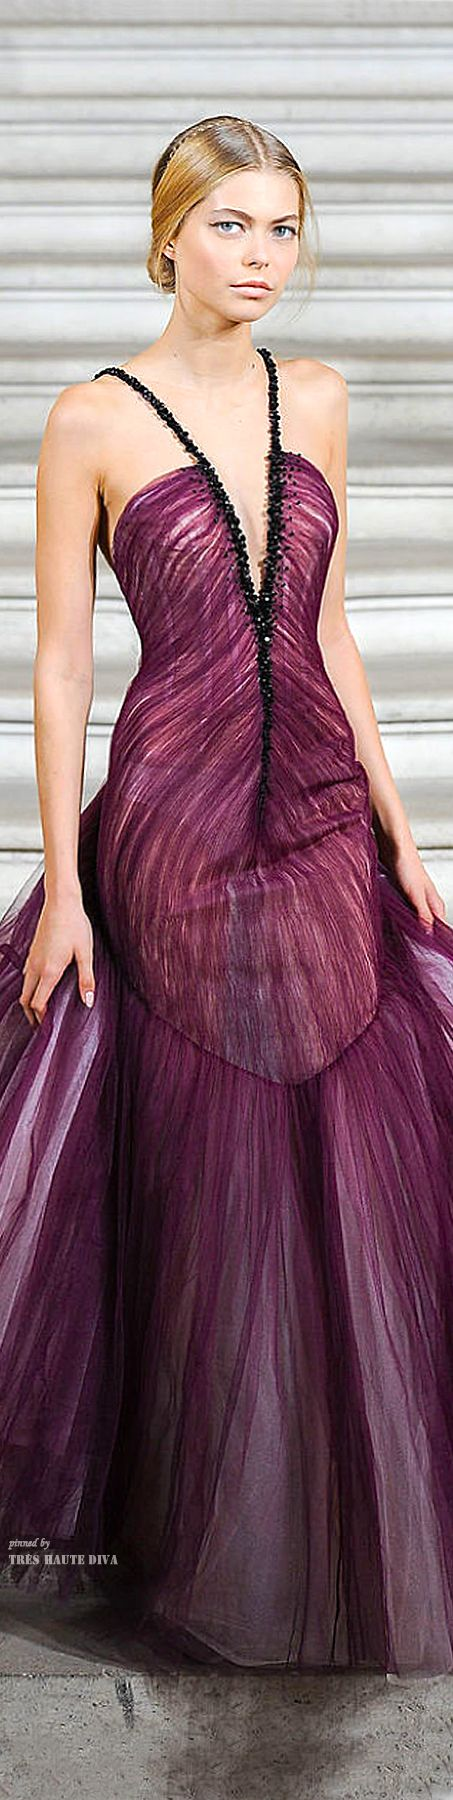 Whoa! Not normally my kind of style but this is absolutely stunning!!  Rami al Ali Fall 2014 ♔